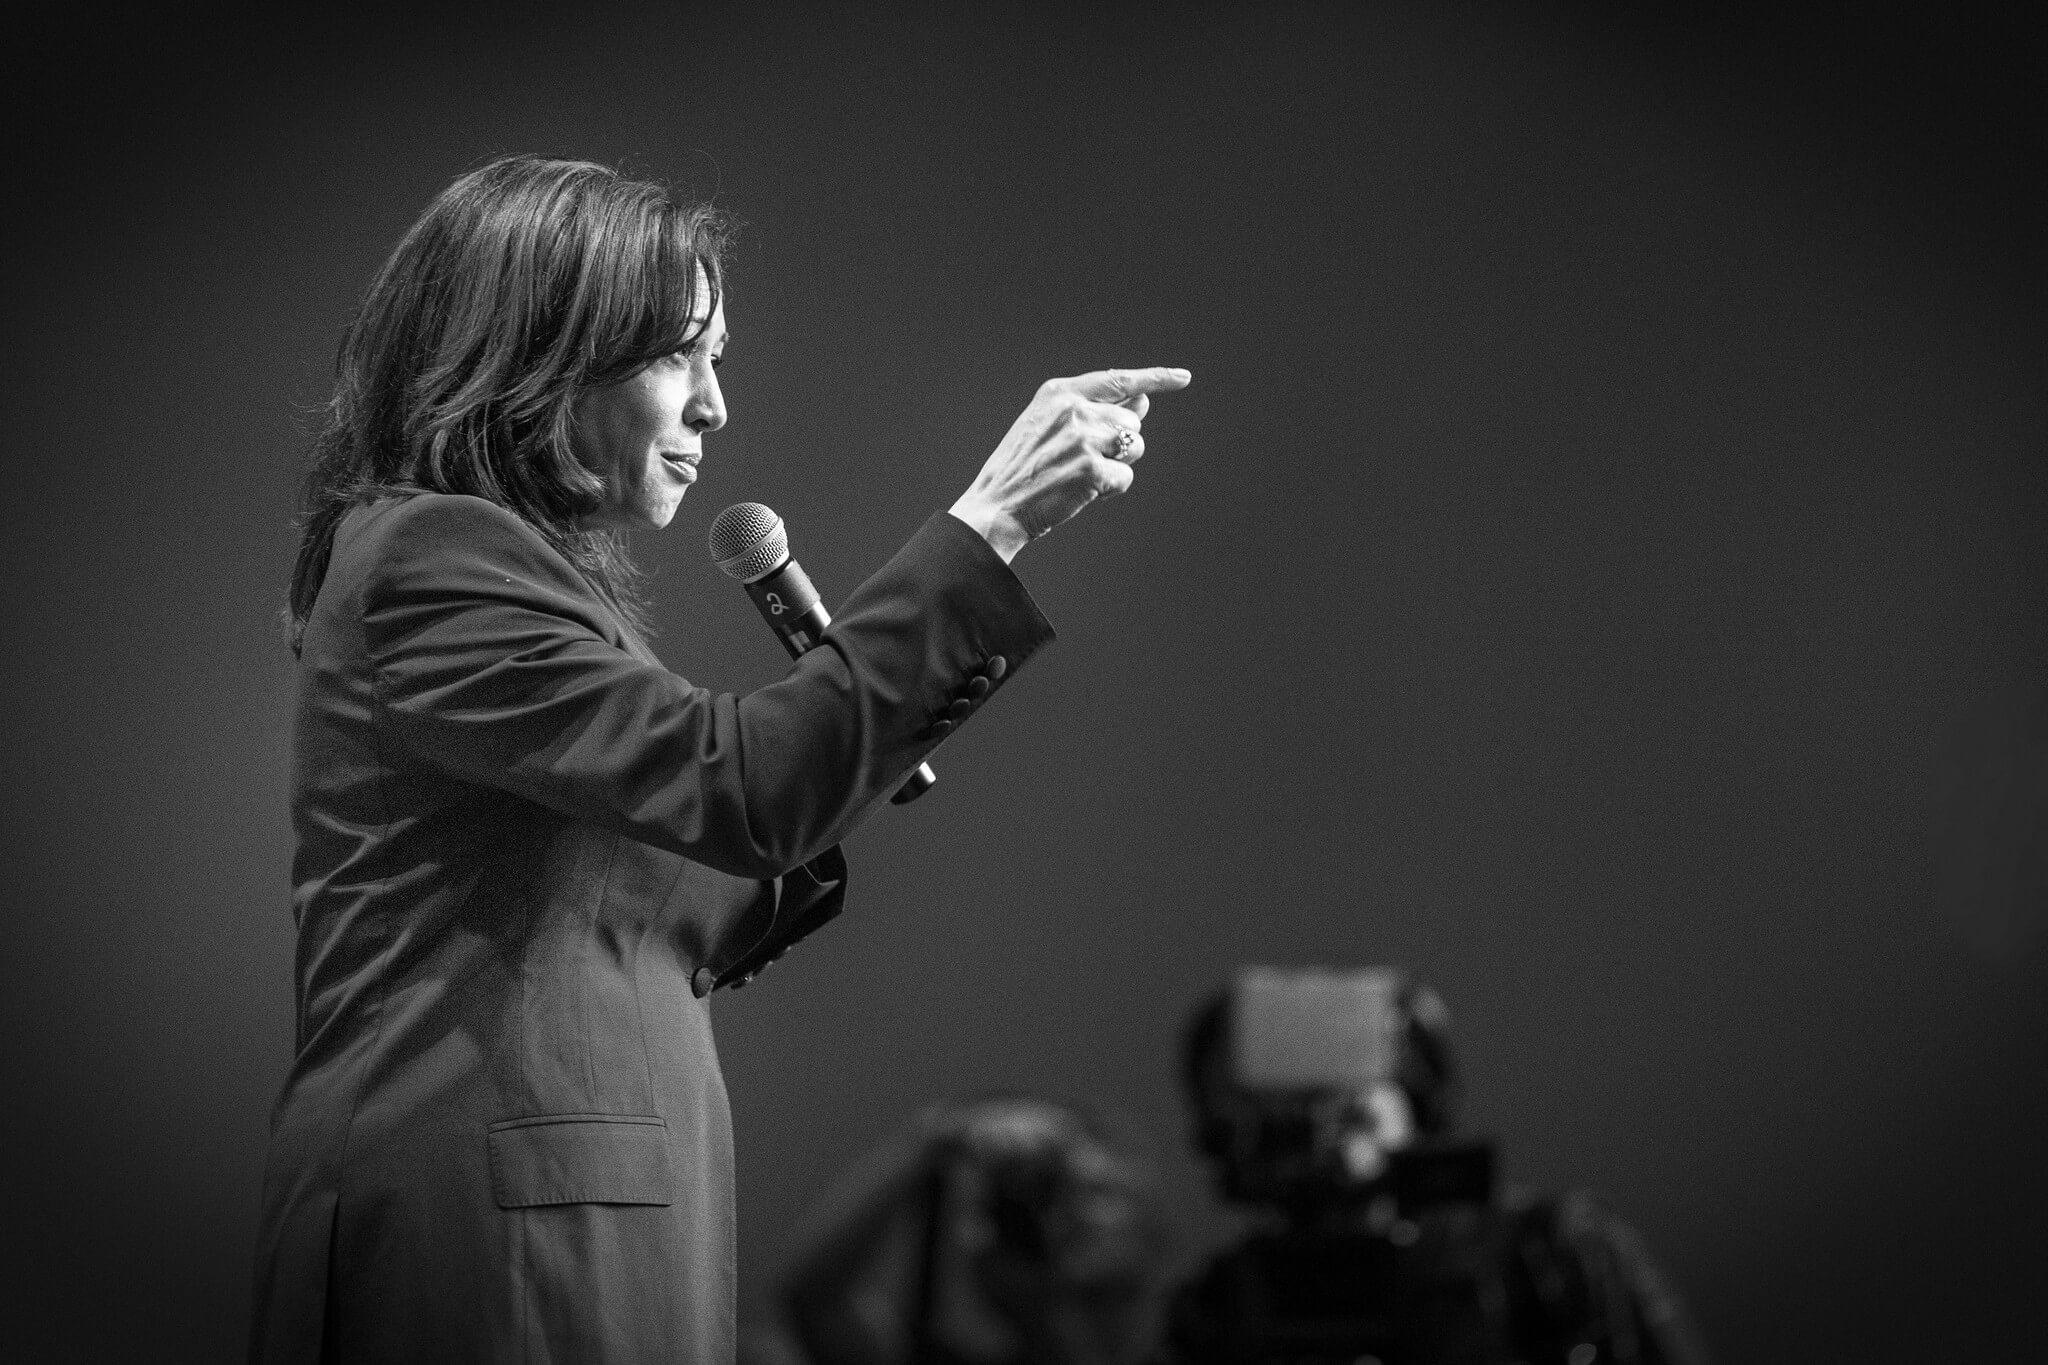 Kamala Harris at the Democrats Hall of Fame Celebration 2019 © / Flickr / Lorie Schaull